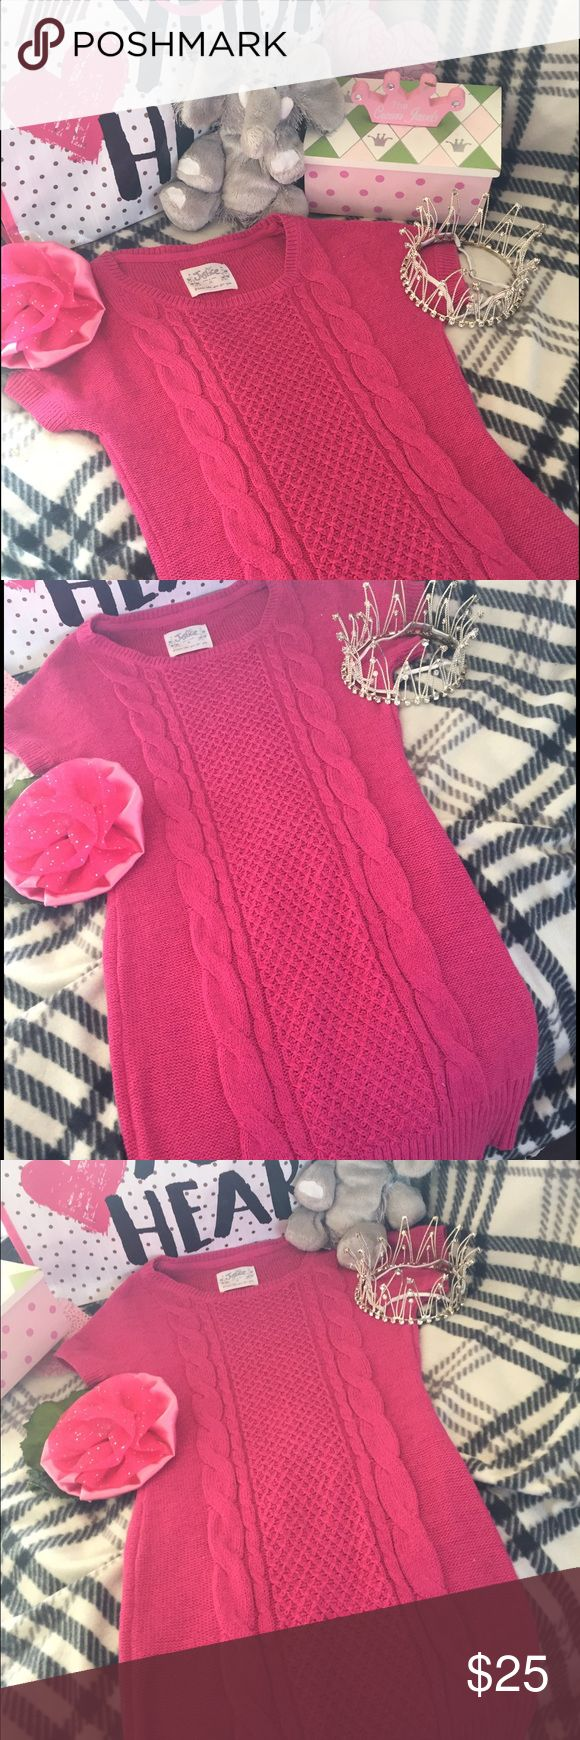 👸🏼🛍Pink Argyle Sweater Dress 👗🎀 Justice 12 💐 🎀Gorgeous pink 💗argyle sweater dress 👗form Justice 🛍size 12 👑worn just once for a recital 💐 like new condition ✨👛 Justice Dresses Casual